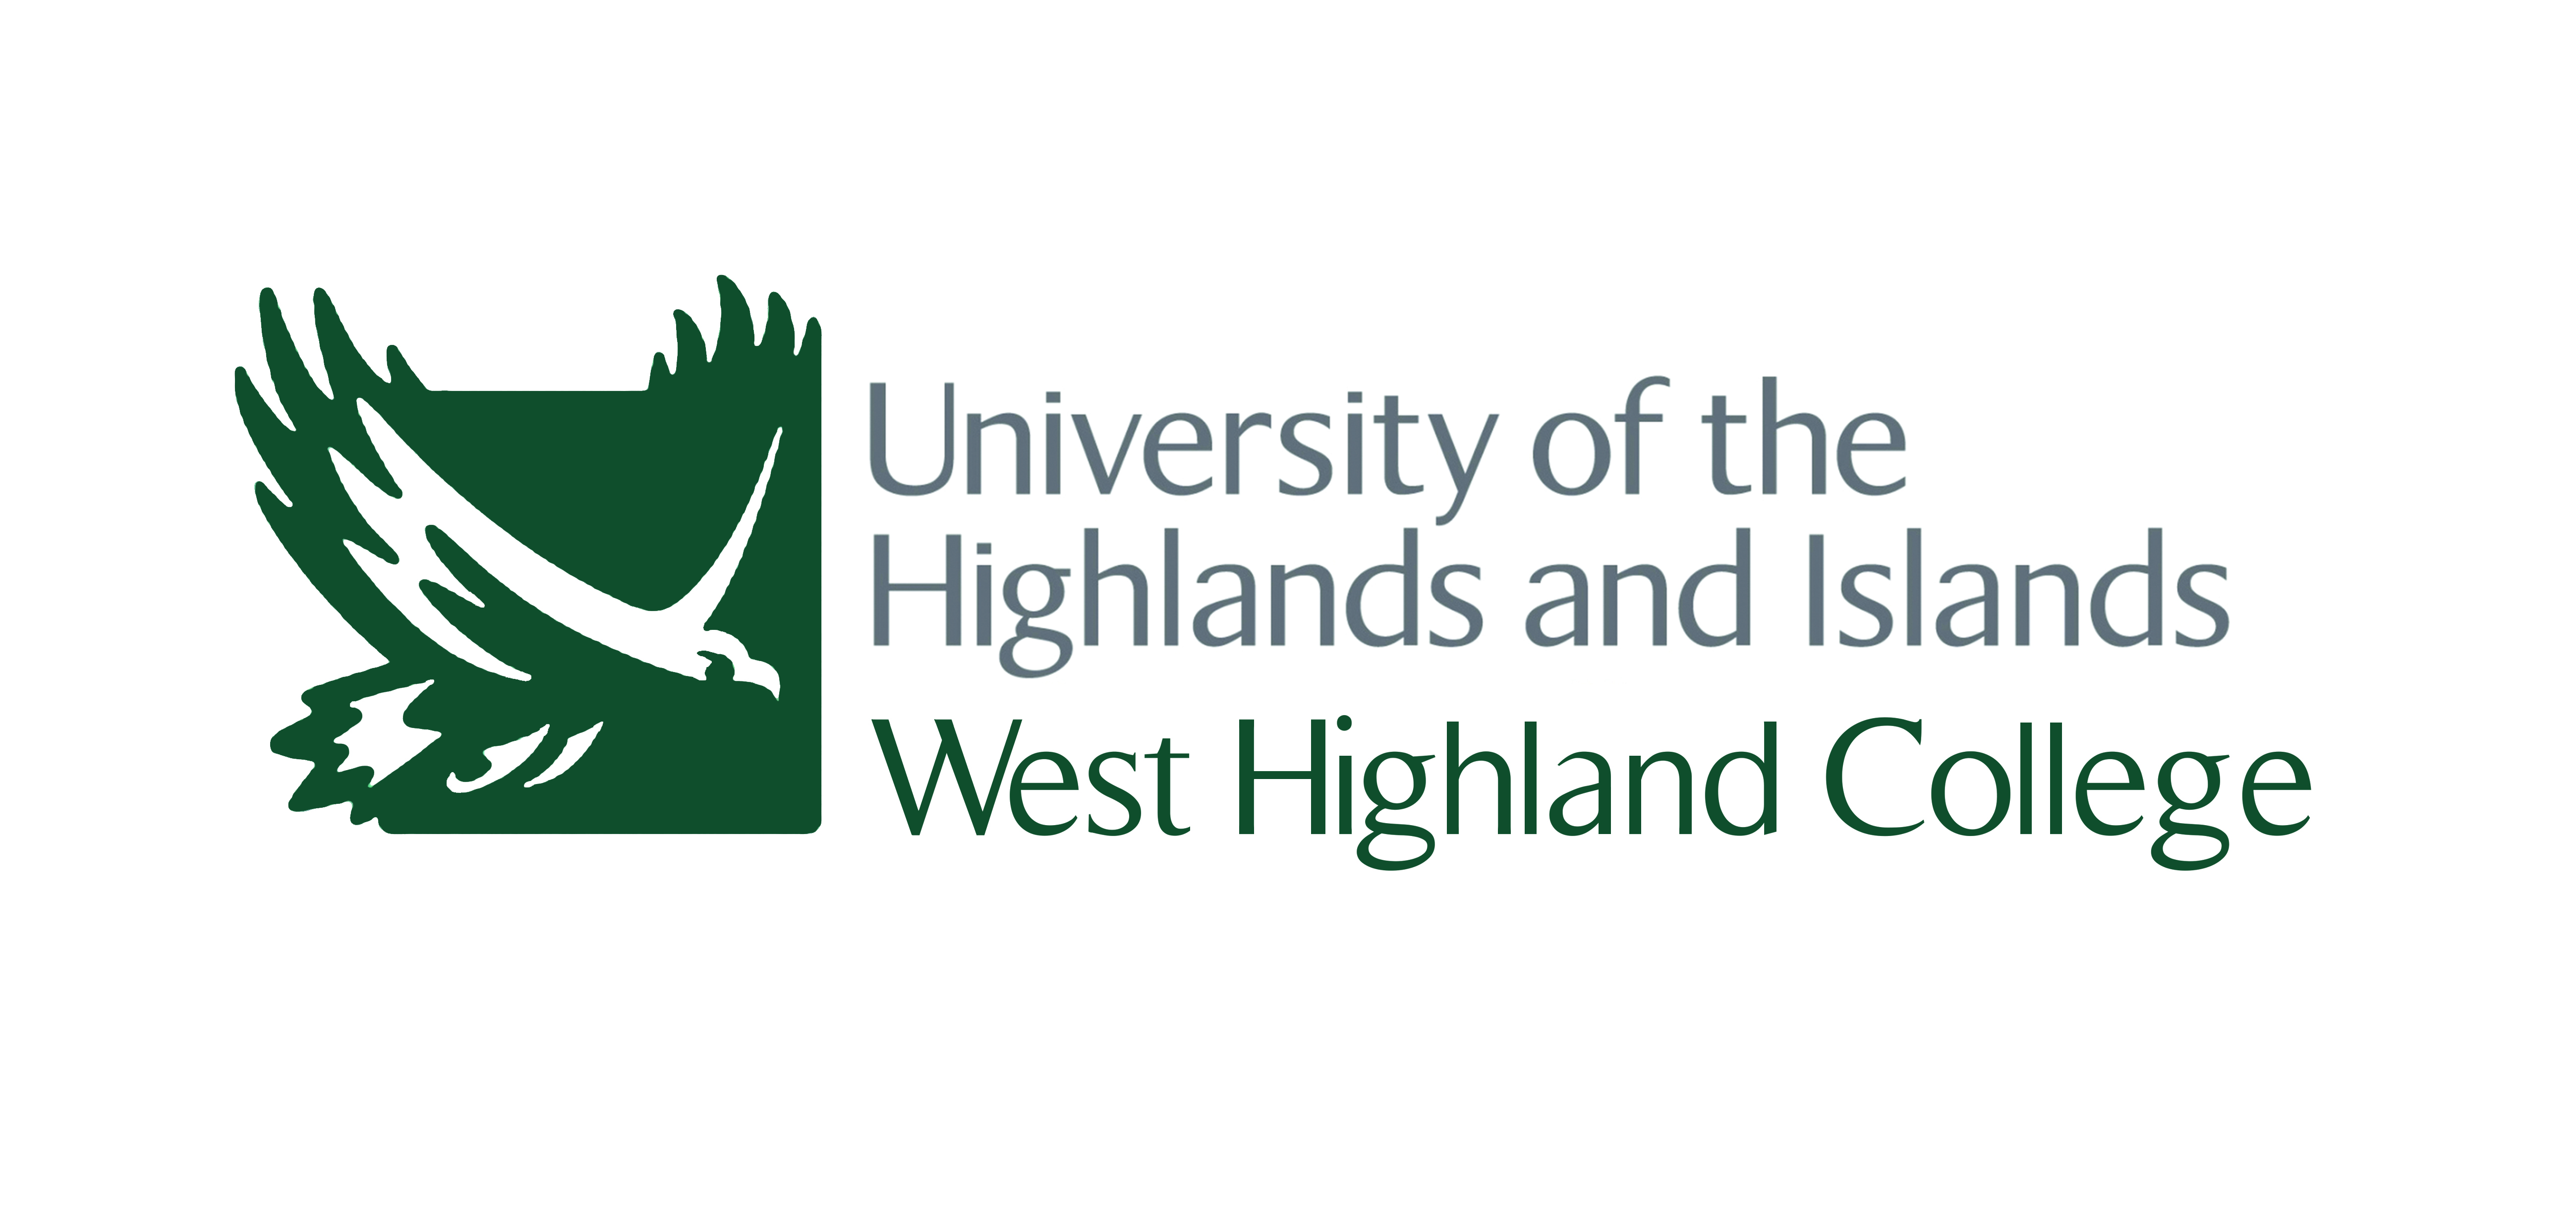 Visit West Highland College website